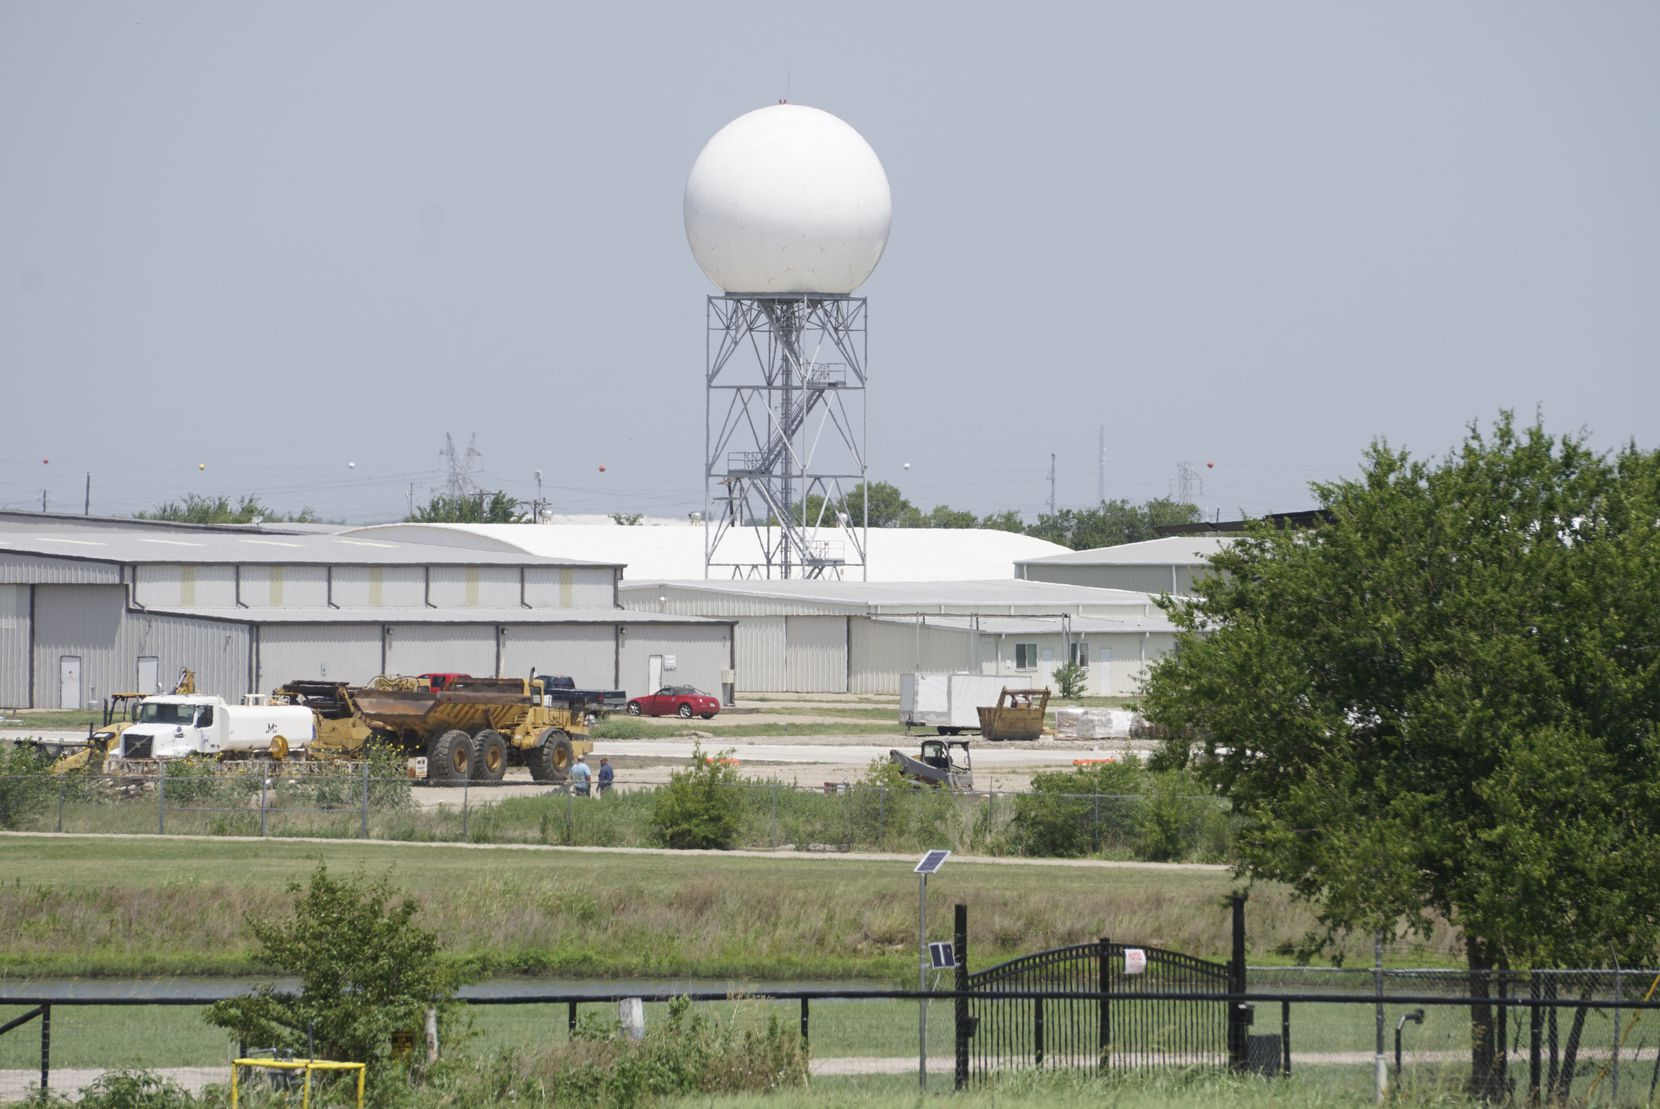 National Weather Service doppler radar at Spinks Airport in Burleson on July 9, 2019.